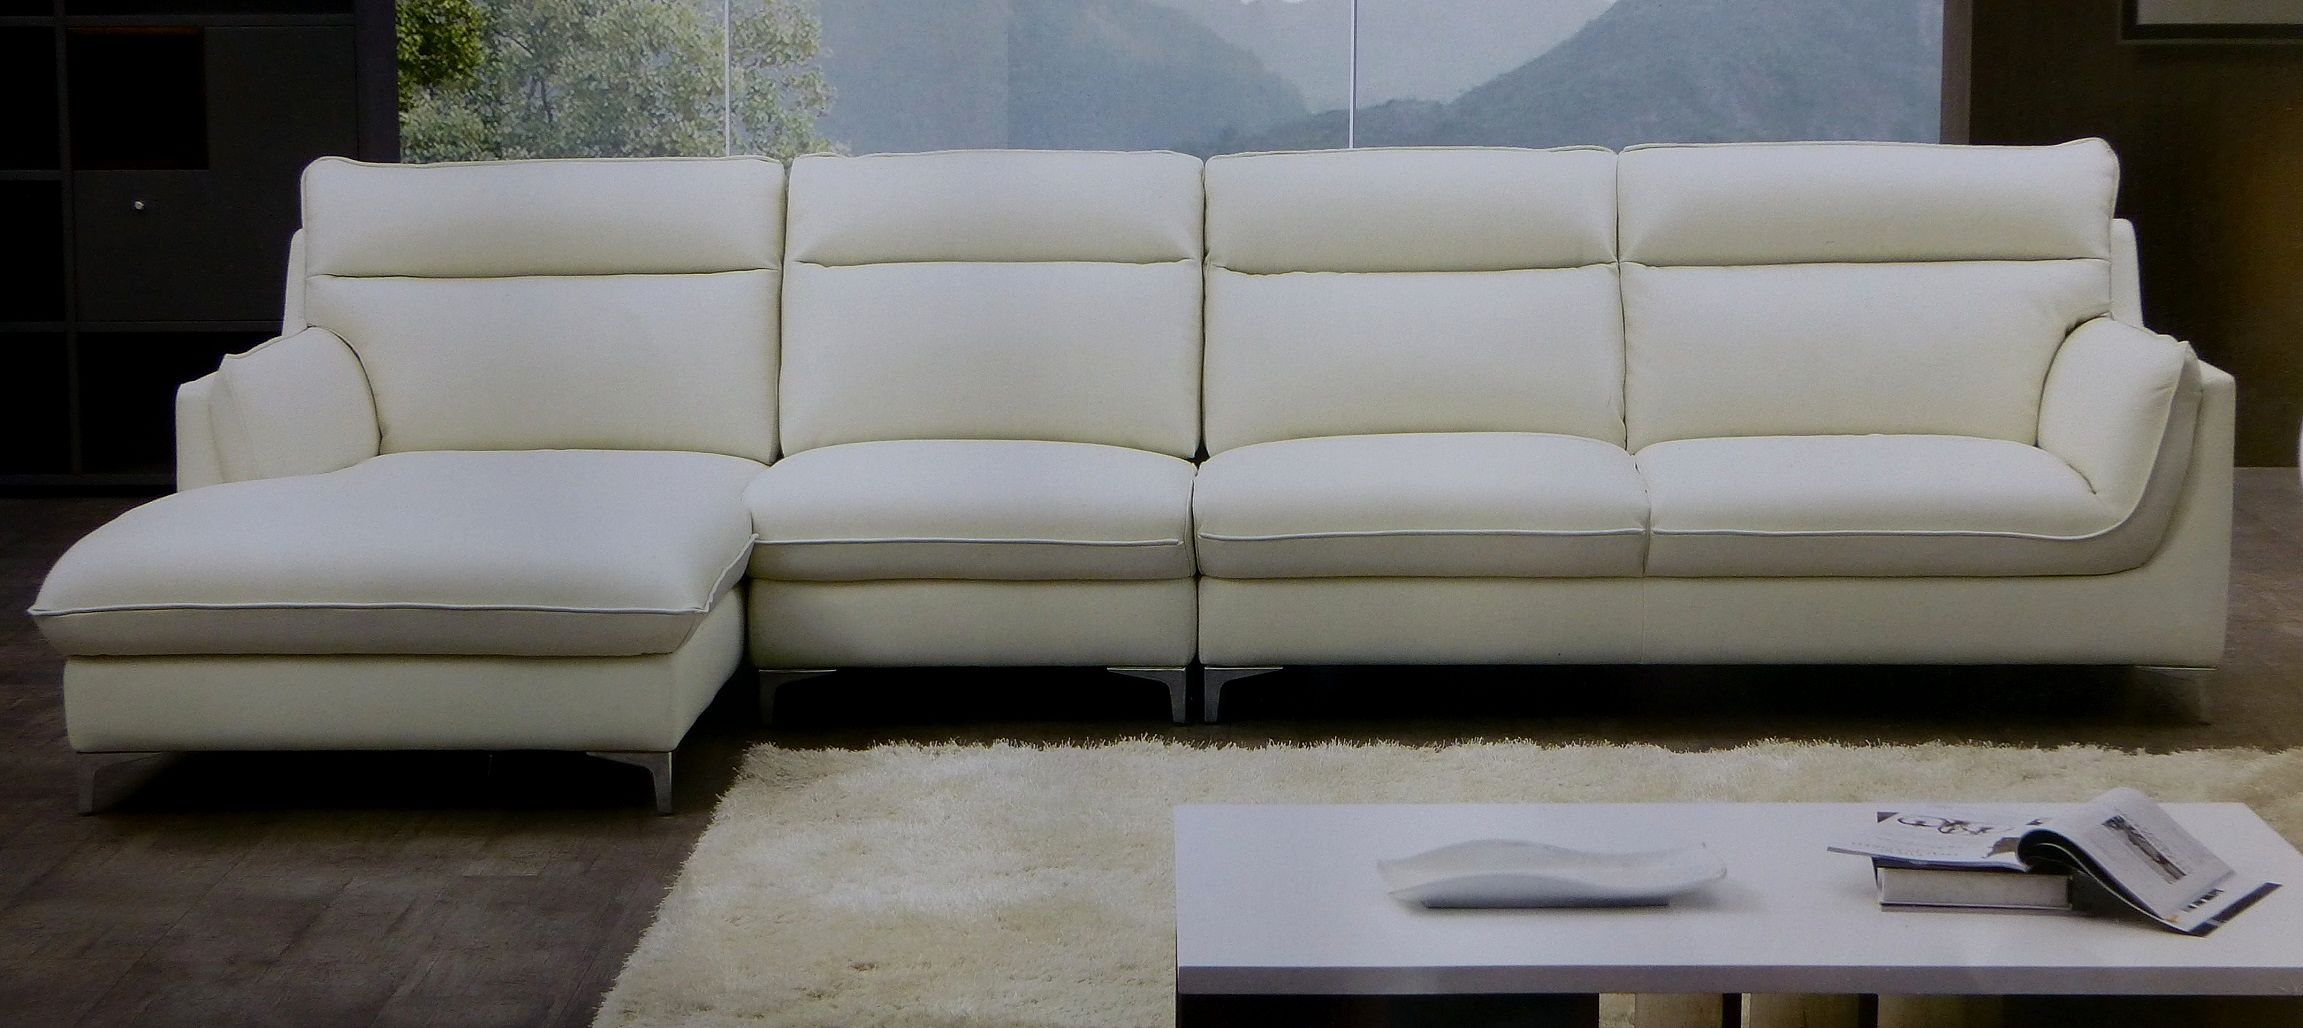 superb sectional sofa sale photo-Top Sectional sofa Sale Ideas